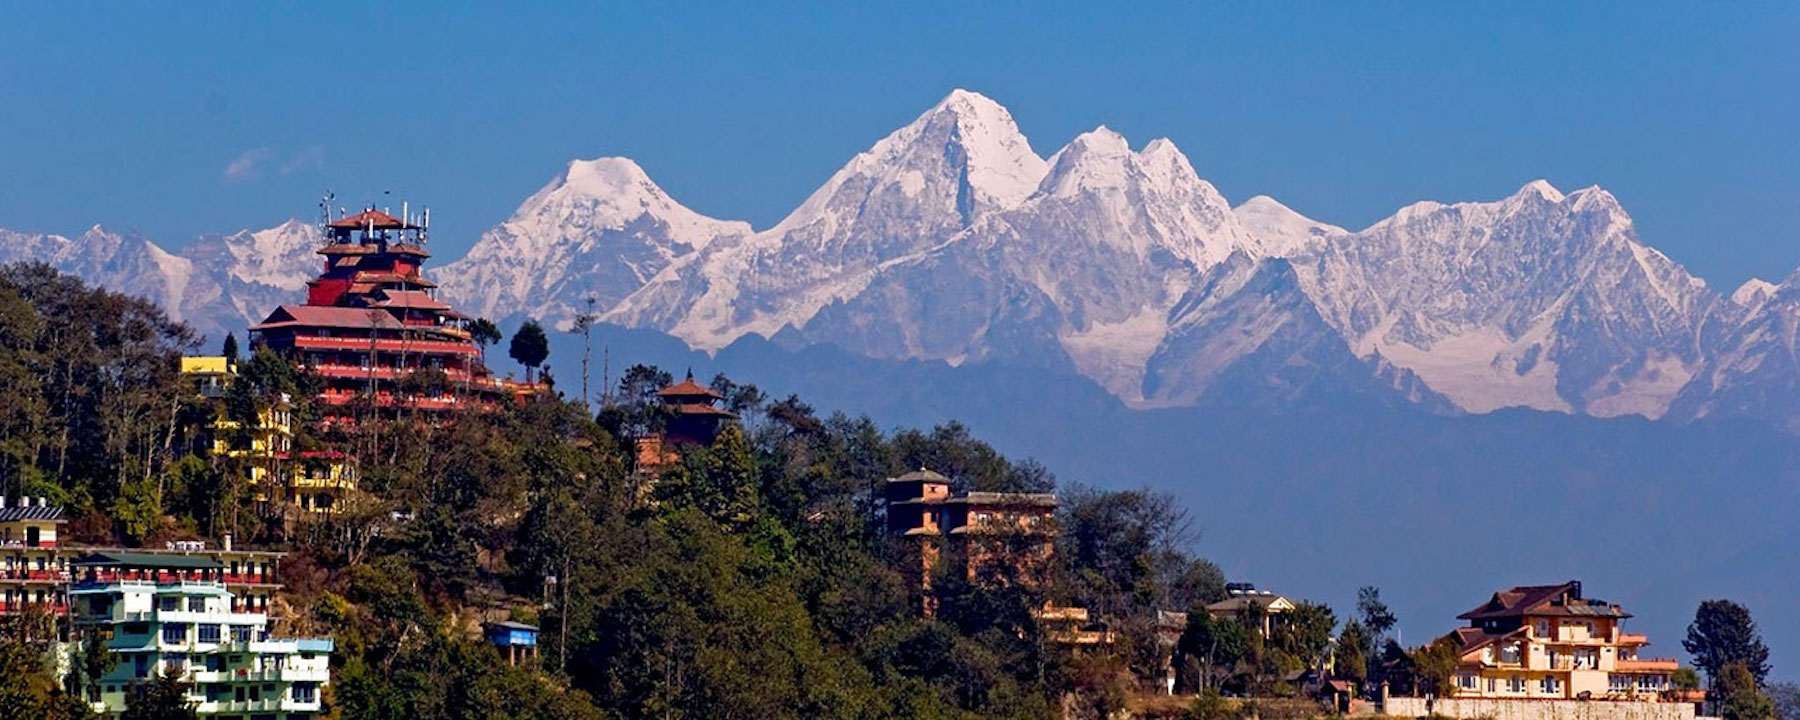 3 Day Taste of Nepal or stop over package ( Private tour for two )